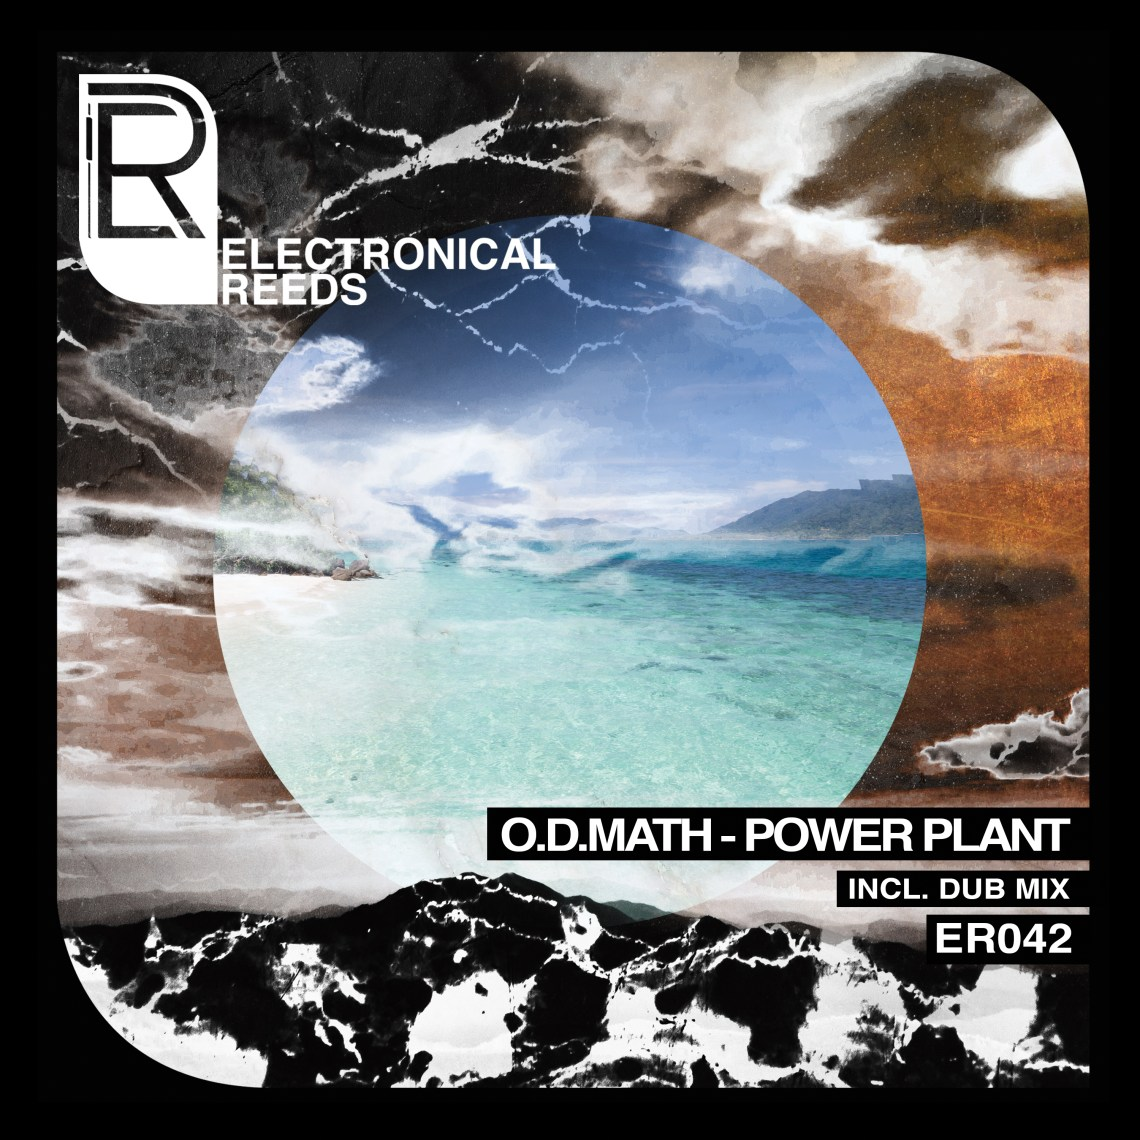 O.D.Math - Power Plant (incl. Dub Mix) - Electronical Reeds